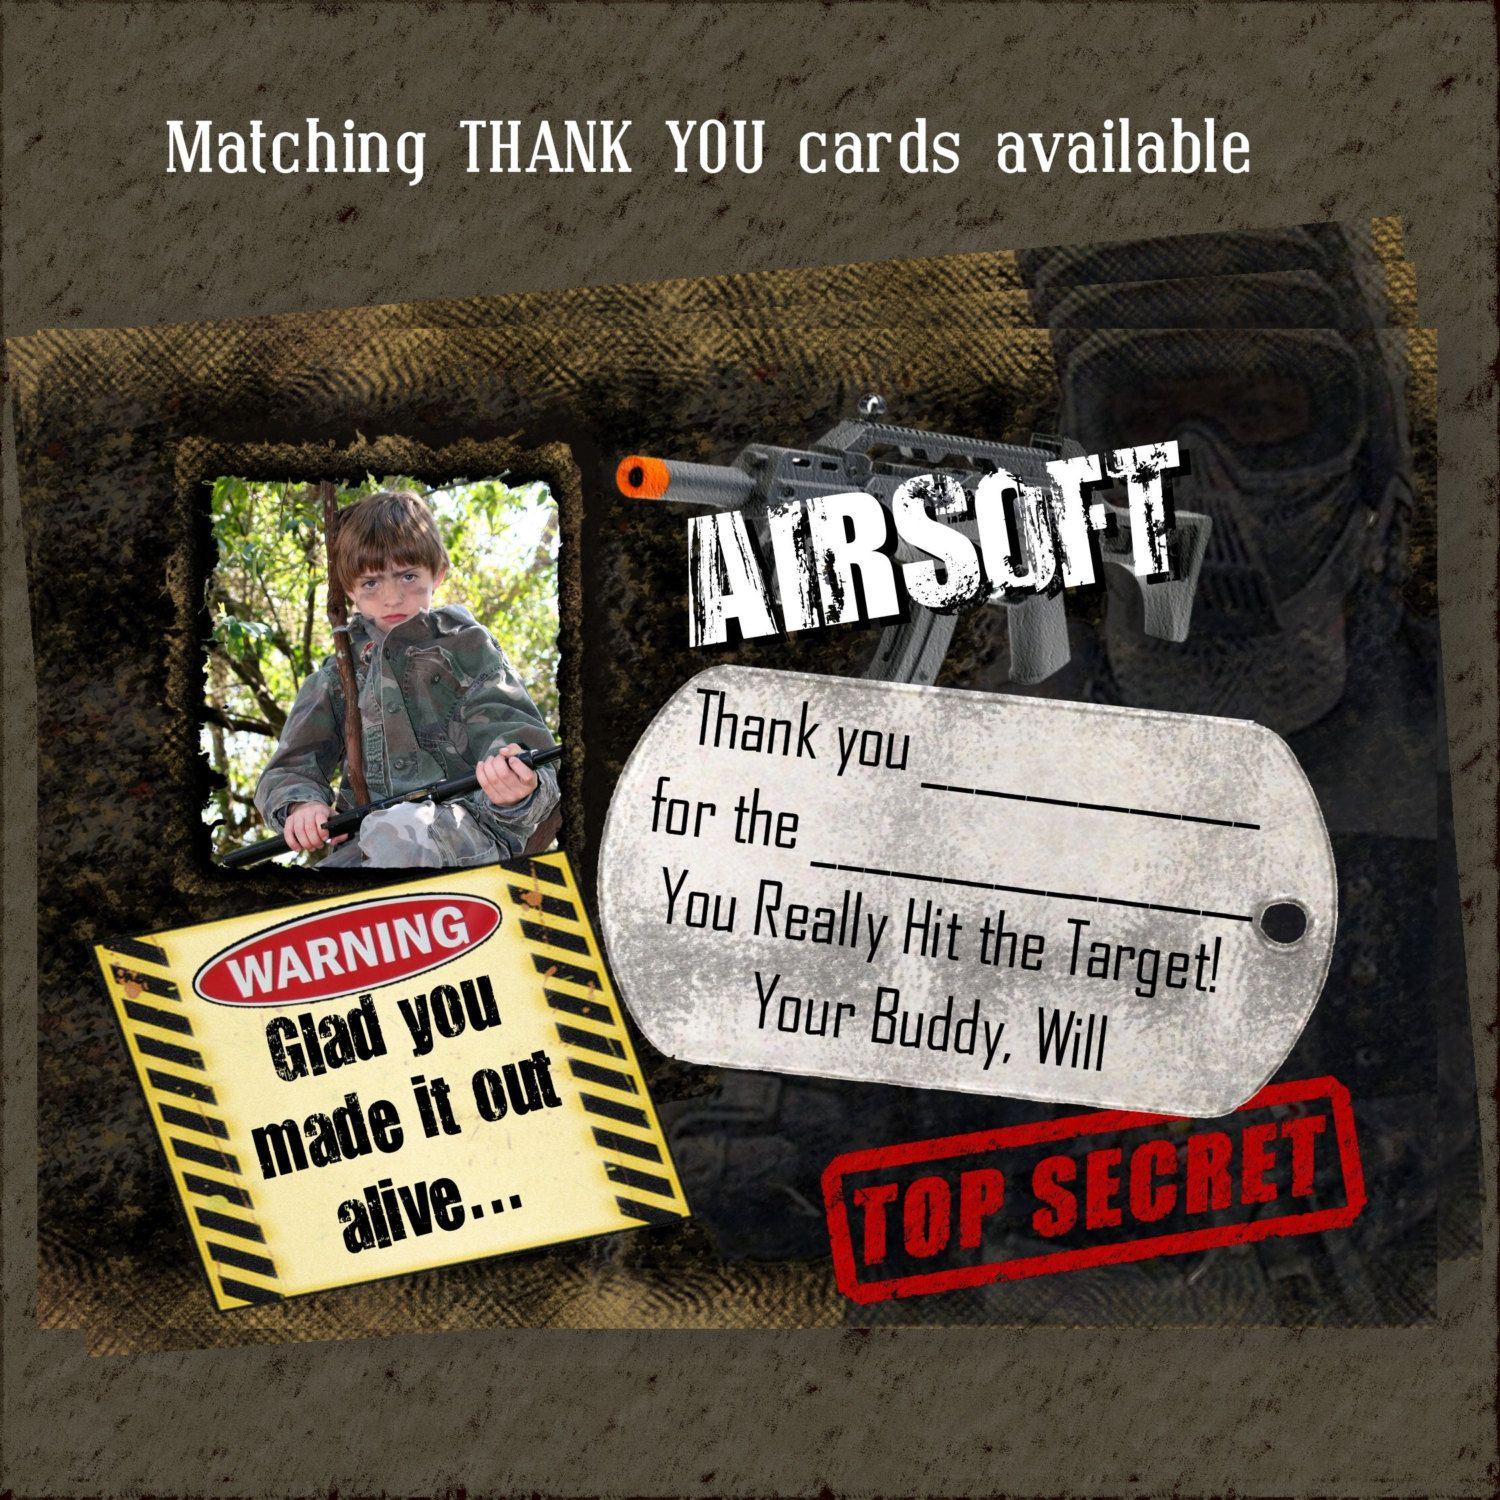 AIRSOFT Thank you cards to match Custom airsoft invitations. One